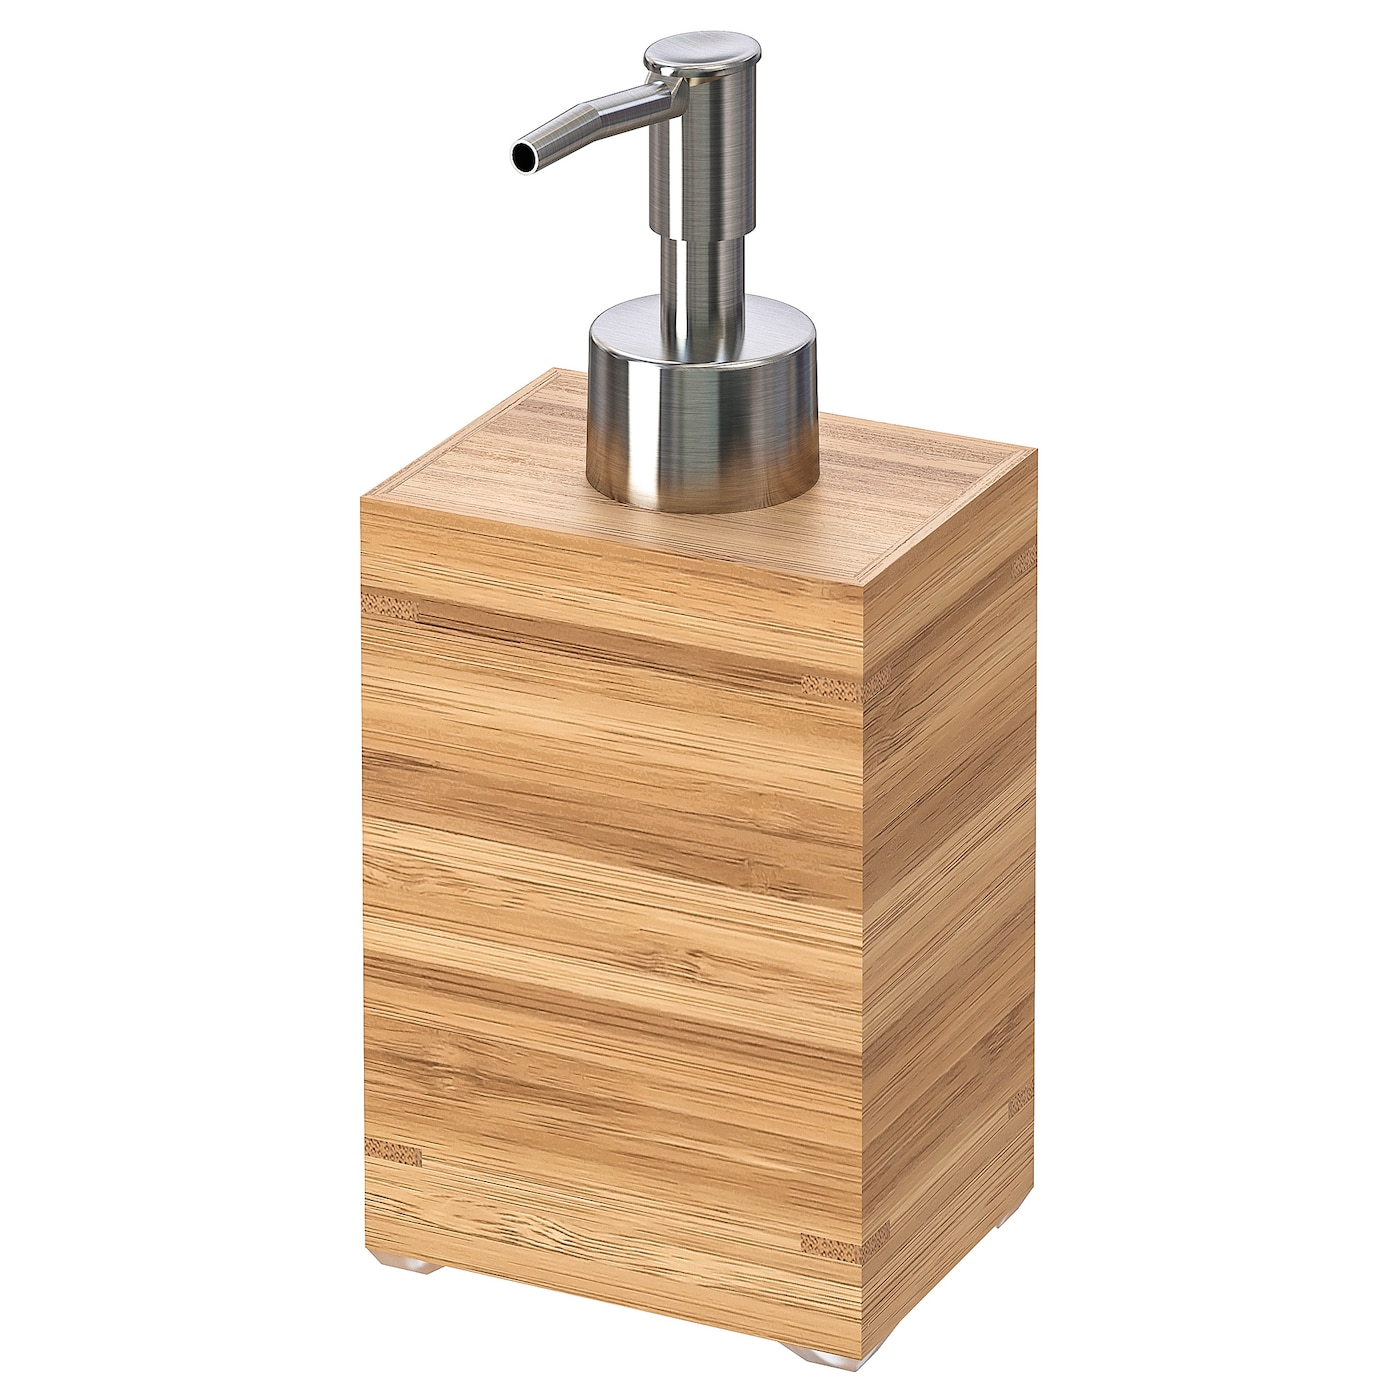 IKEA DRAGAN soap dispenser Bamboo is a hard-wearing natural material.